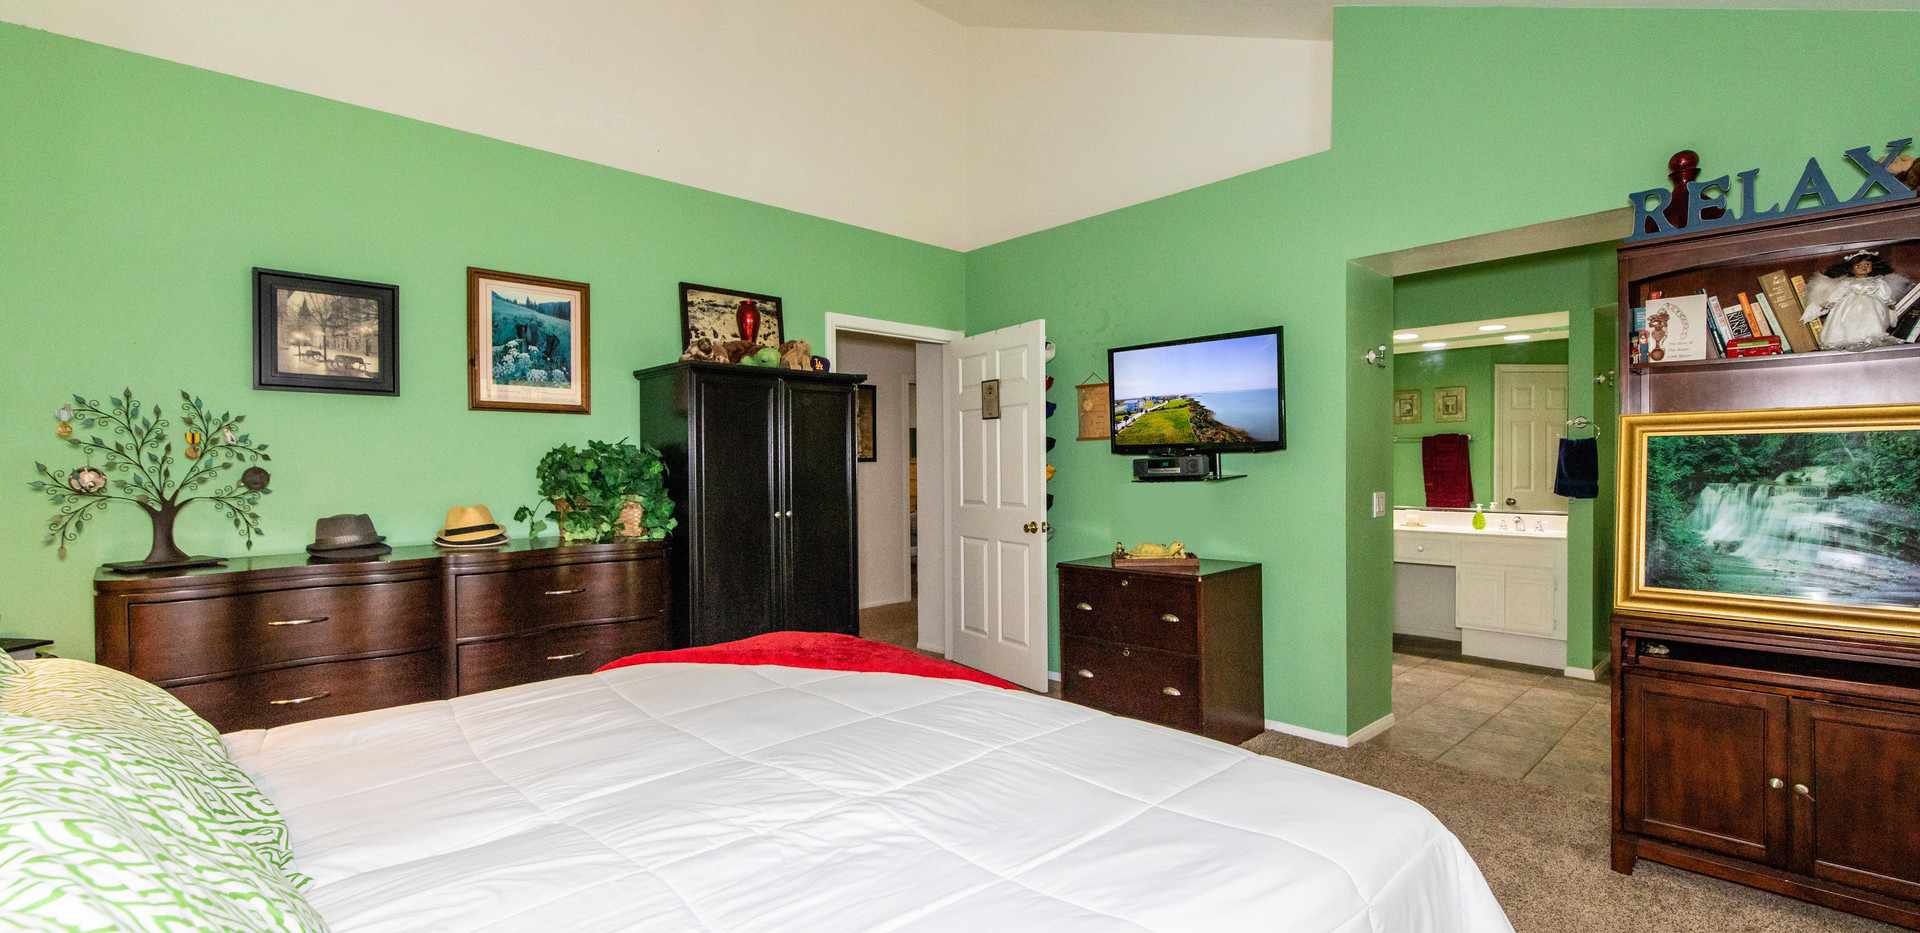 7300 Linares Ave-int-22.jpg